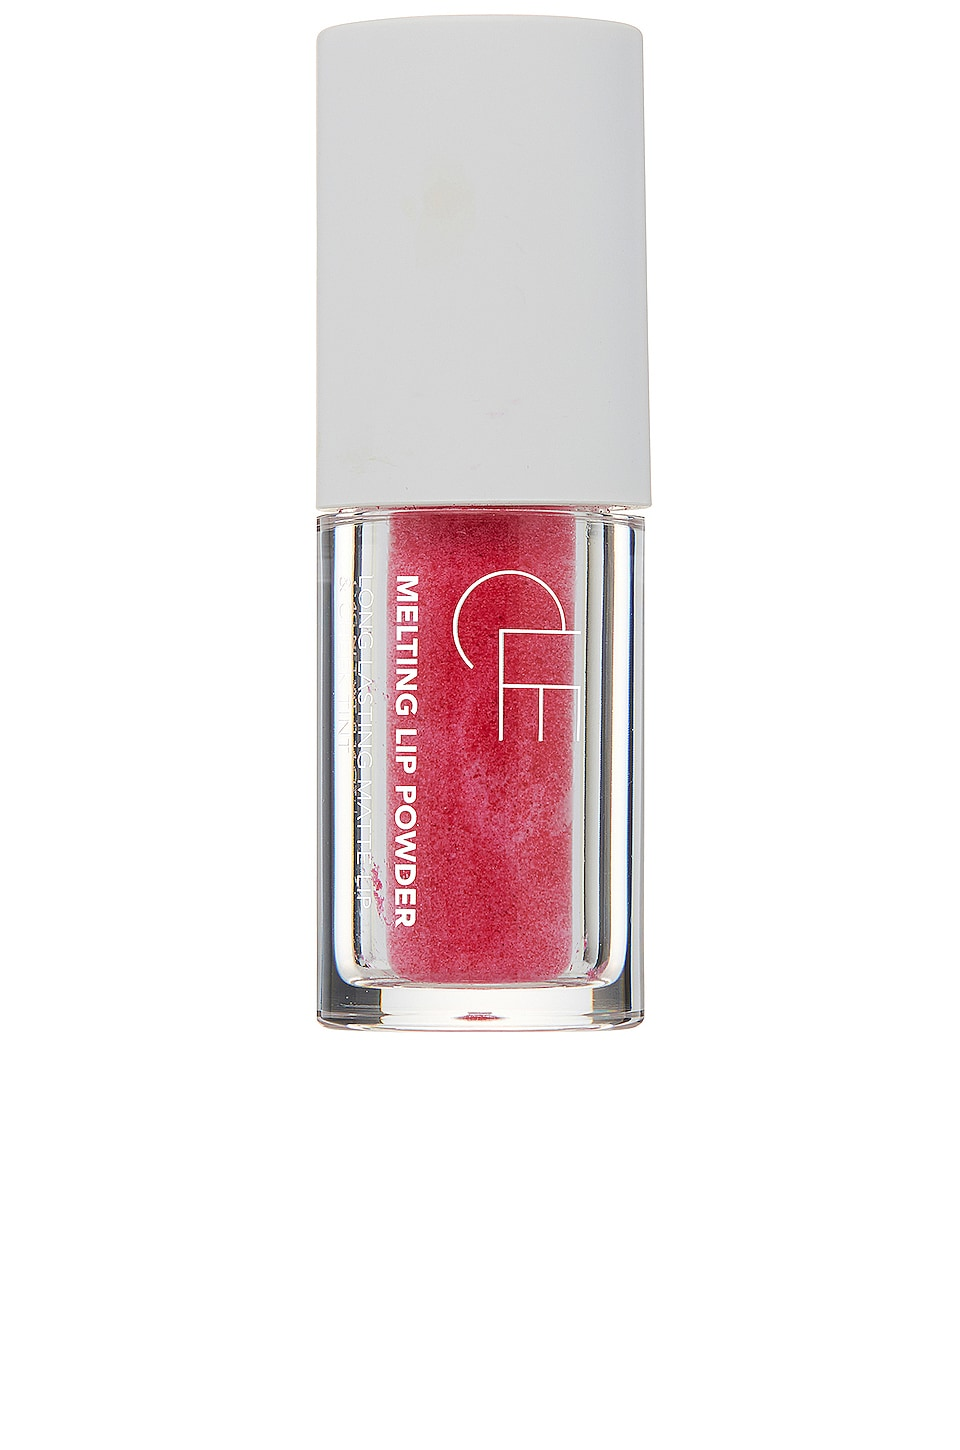 CLE COSMETICS Melting Lip Powder in Pink